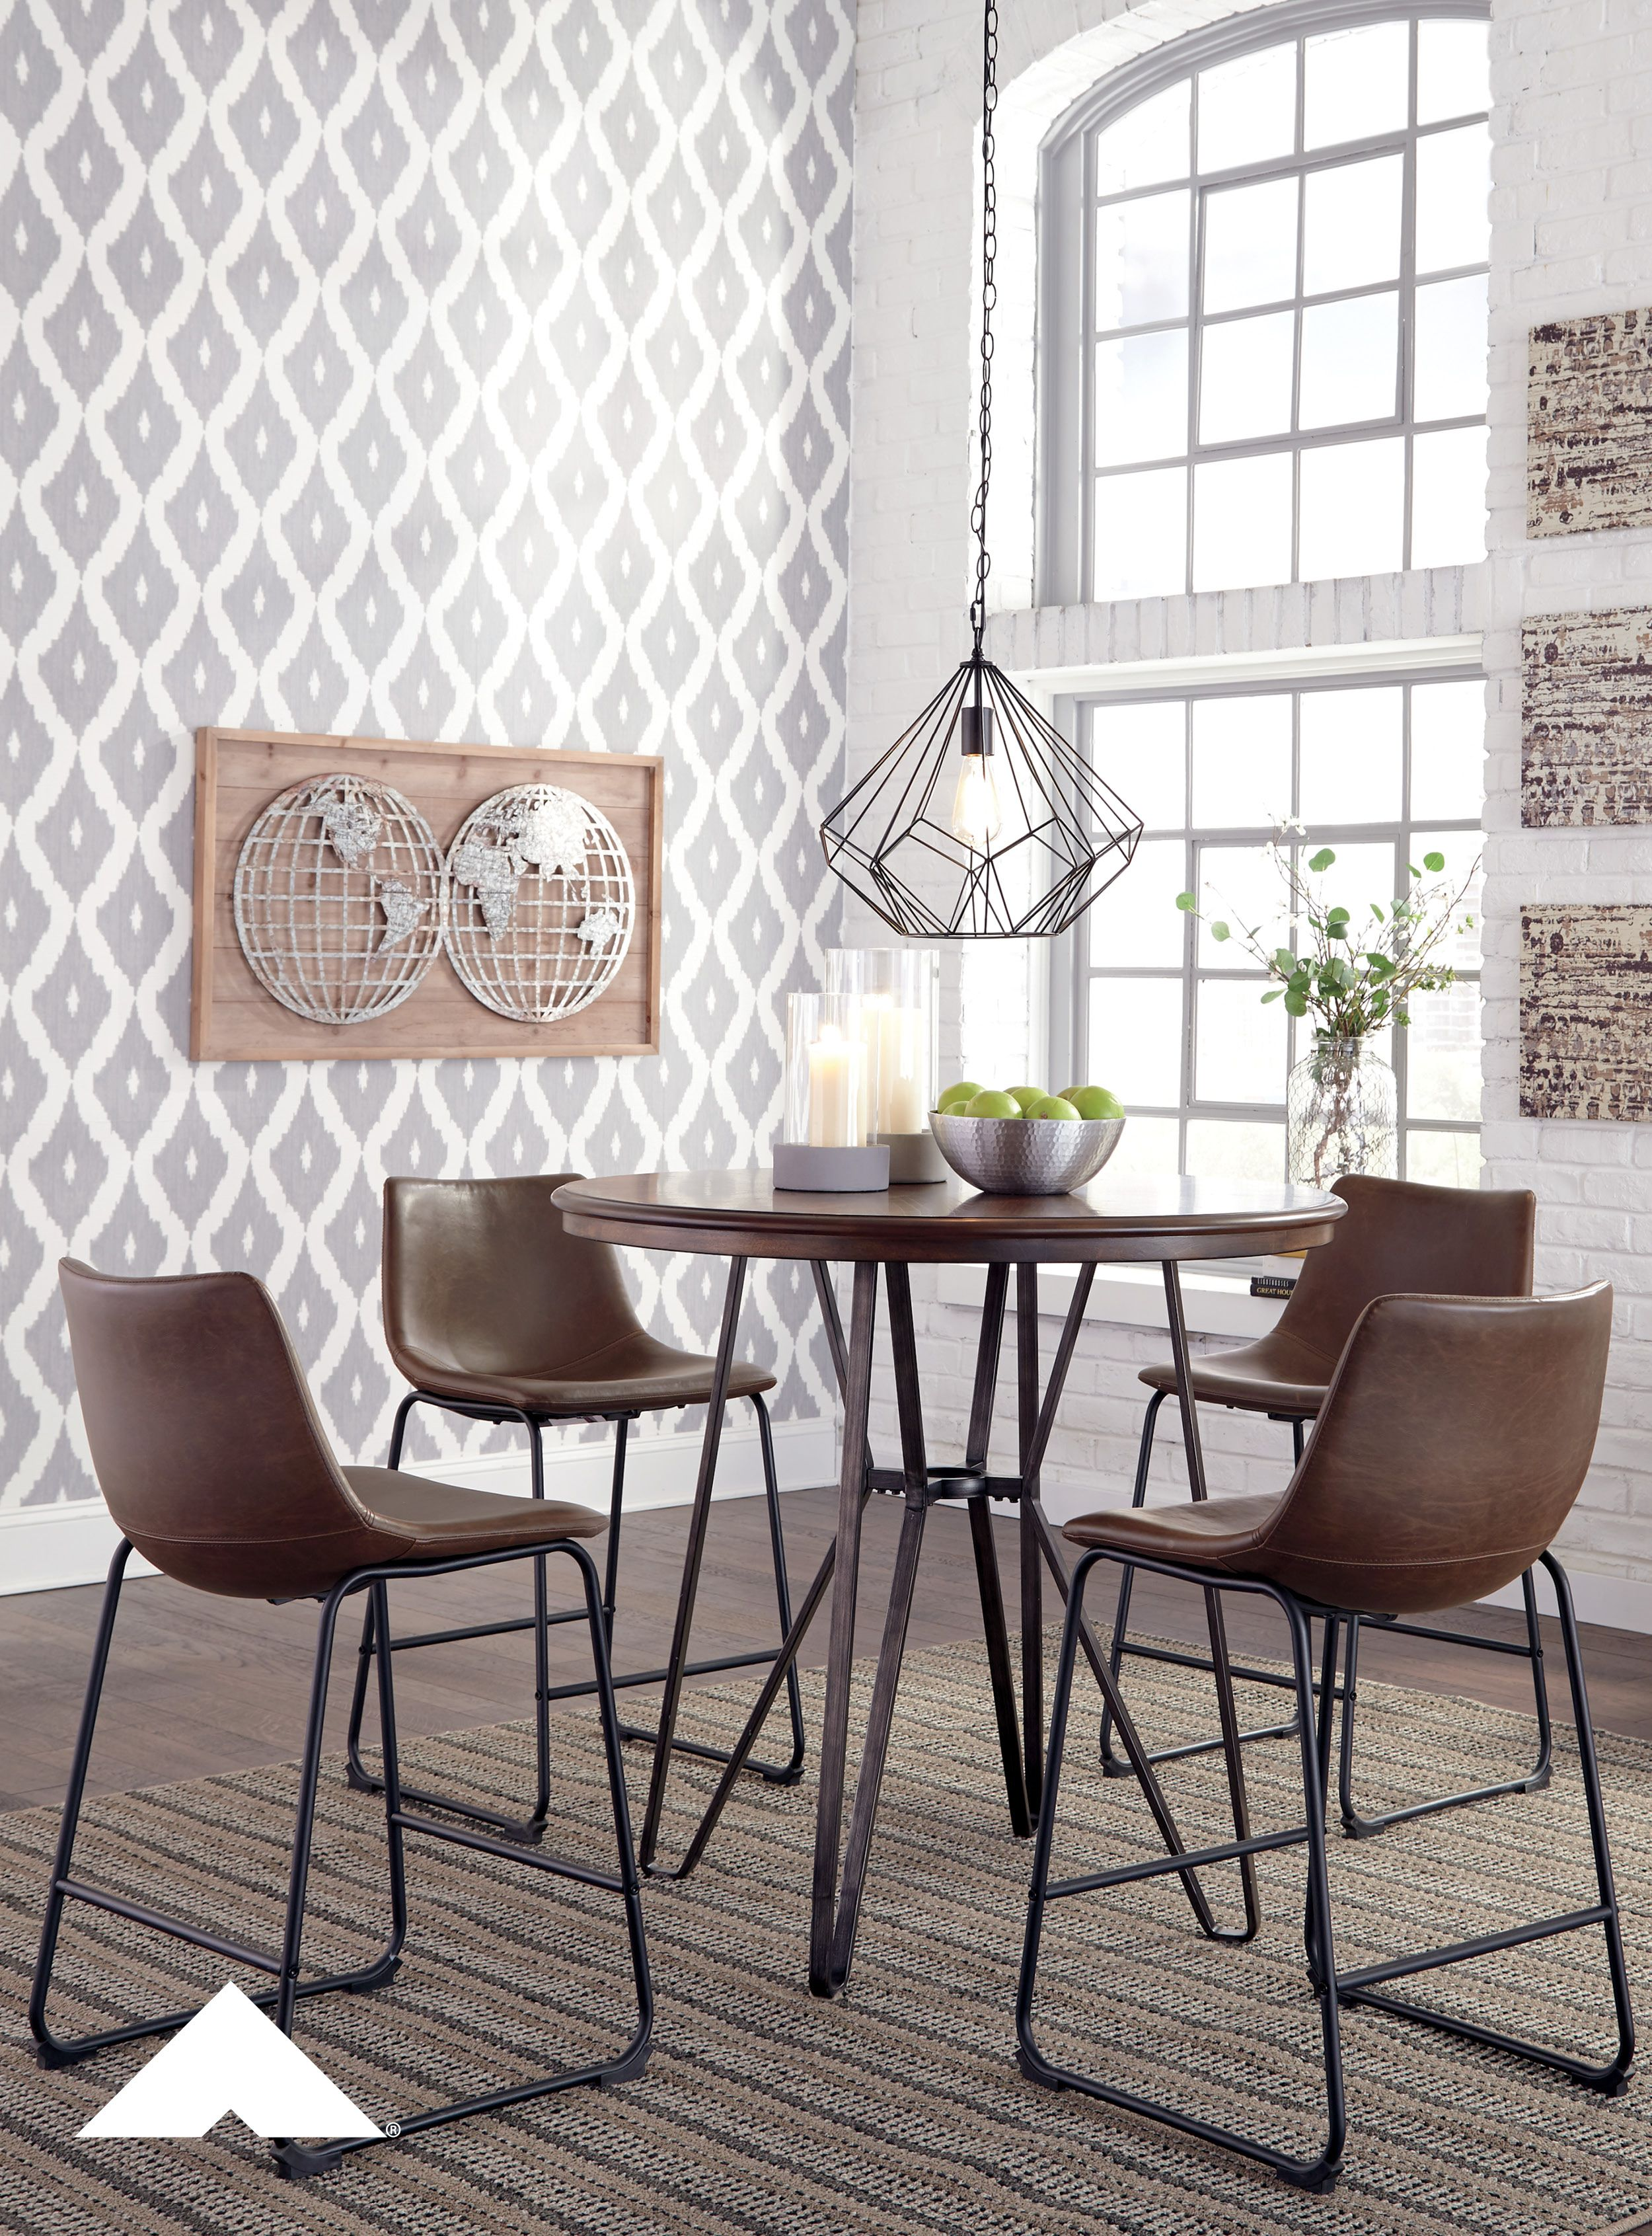 Elegant Centiar Two Tone Brown Mid Century Style Dining Room Table Set By Ashley  Furniture. | #AshleyFurniture #Homedecor #Dining #Tables #Chairs